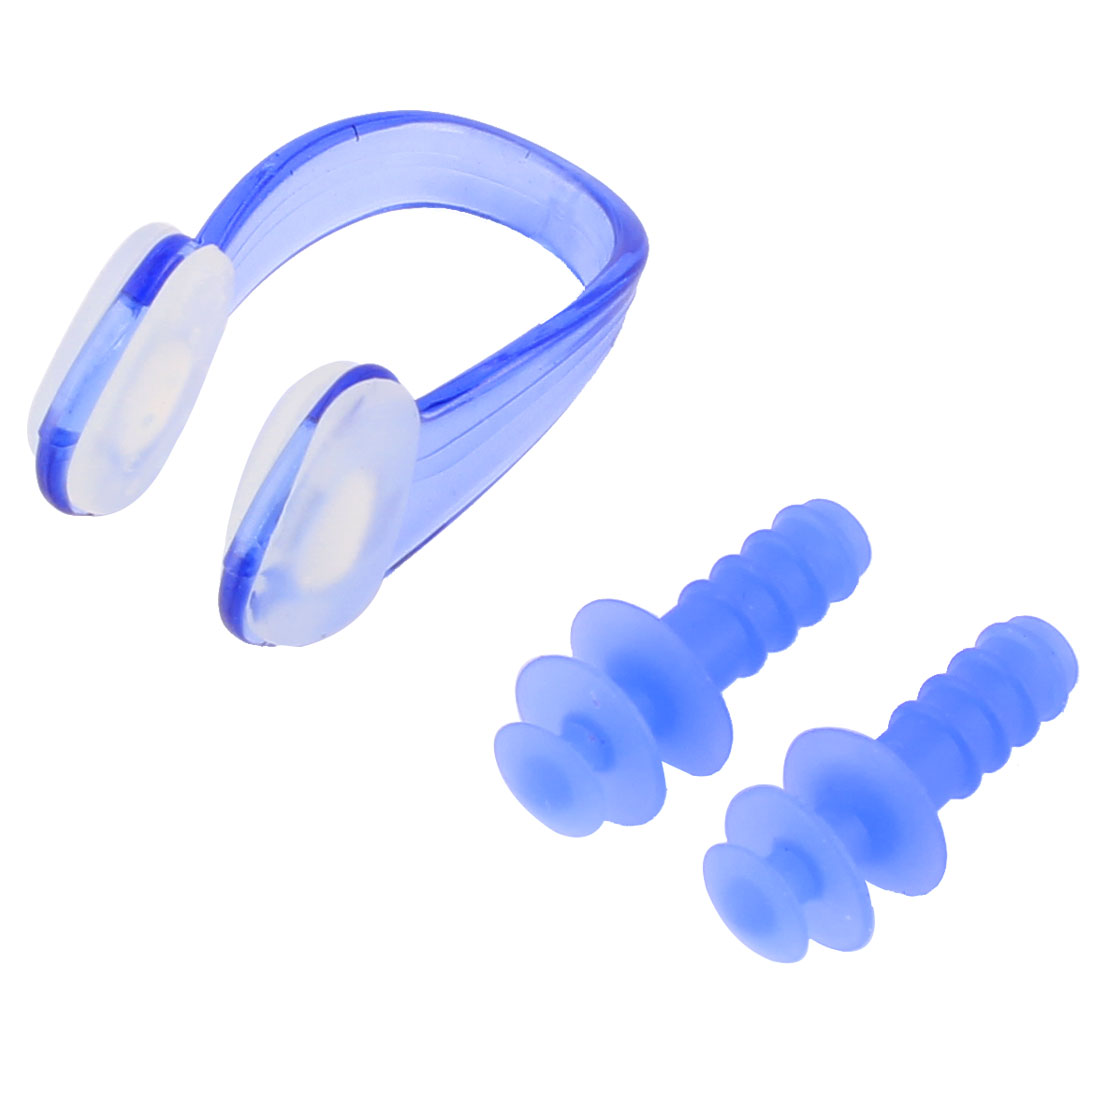 Adults Silicone Swimming Earplugs Nose Clip Blue 3 in 1